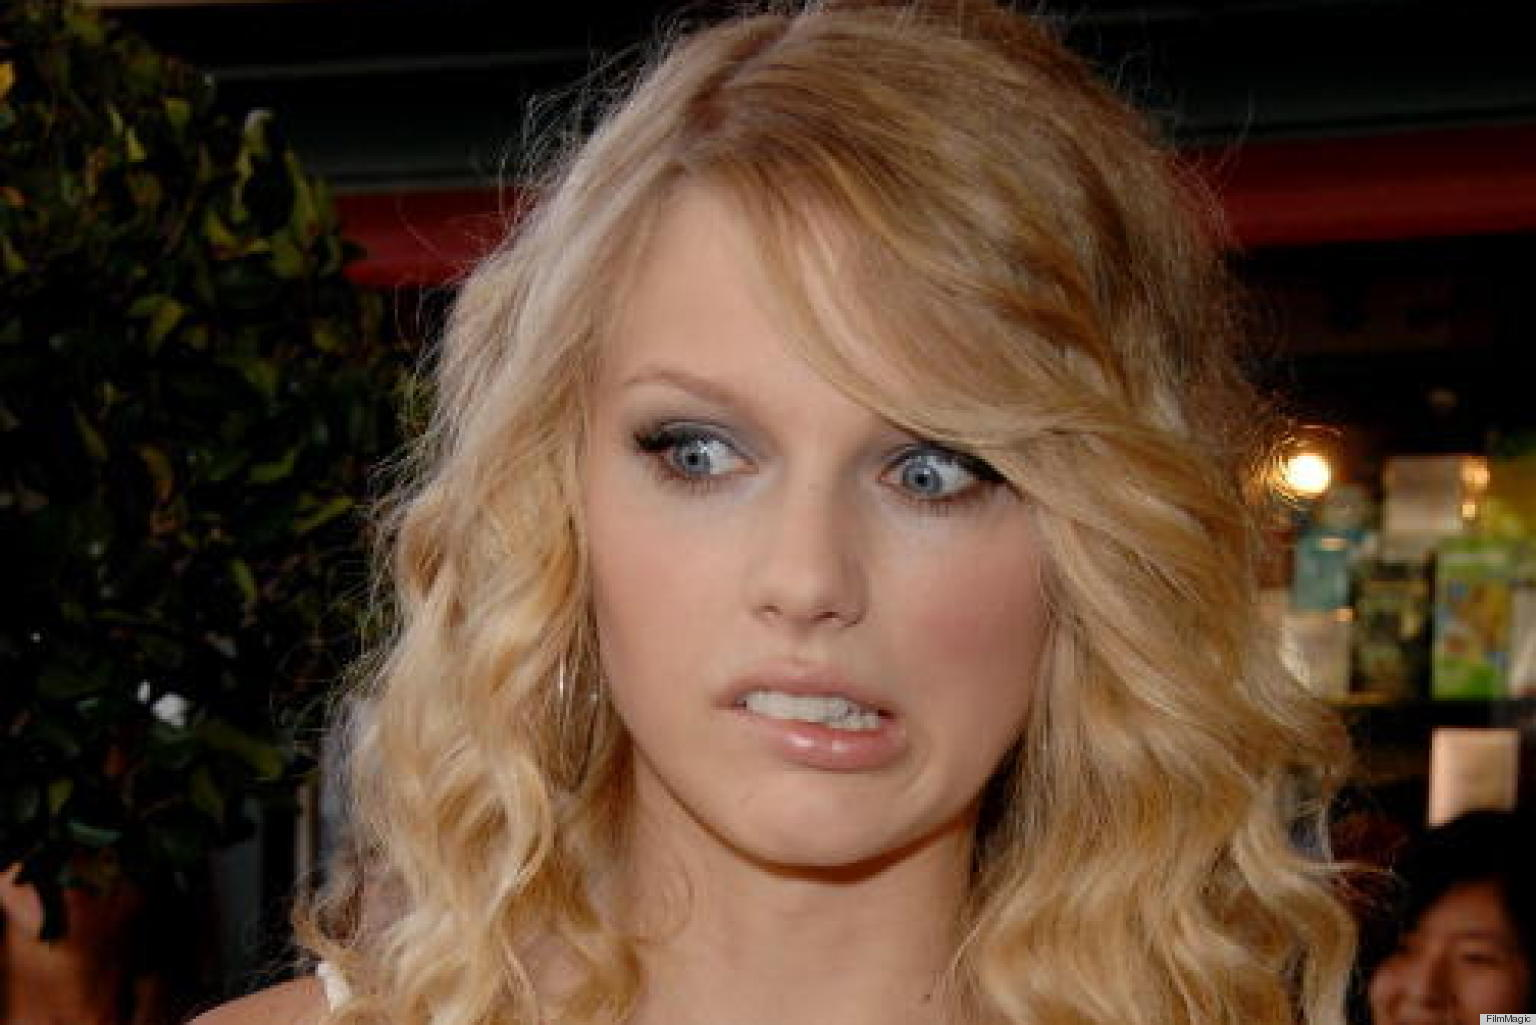 TAYLOR TROUBLE: Controversy swirls over pop star's 'very white' video set in Africa…